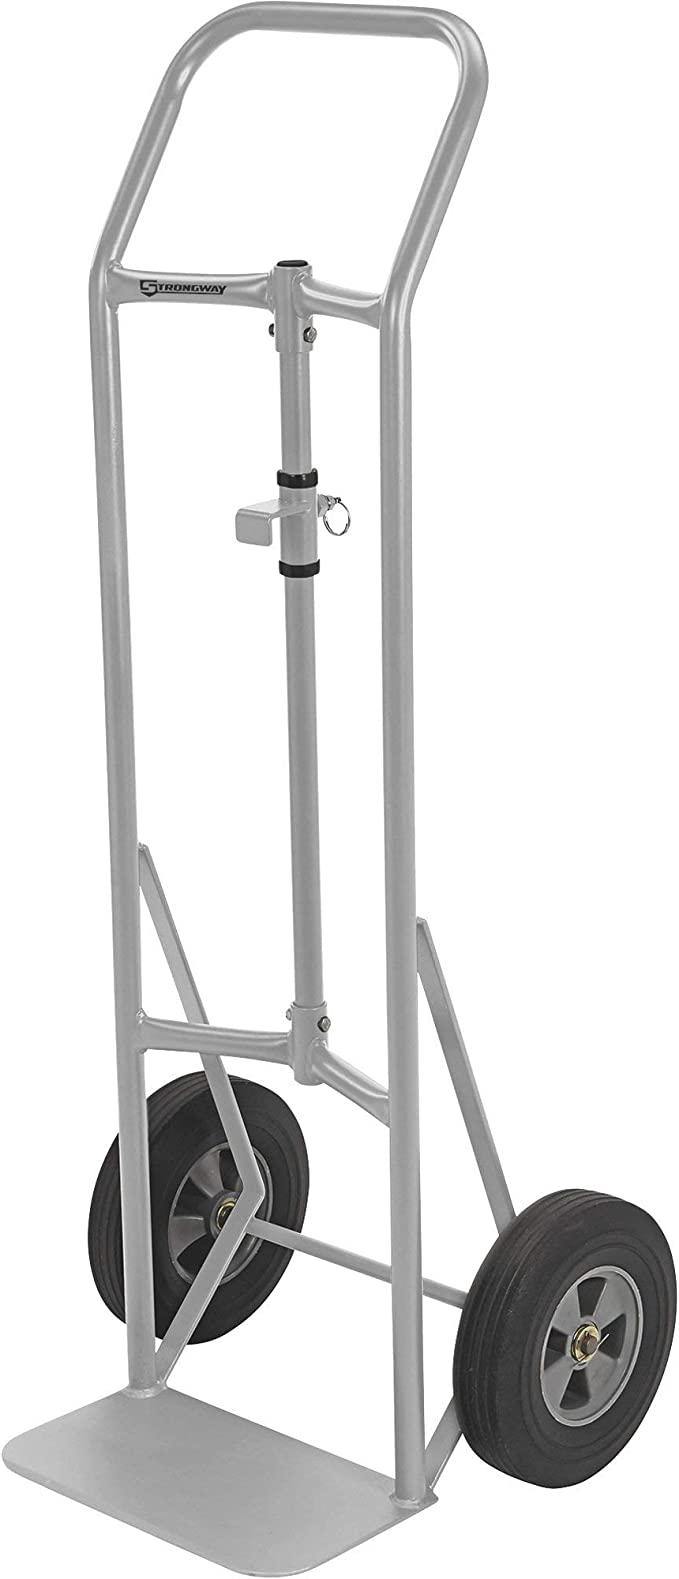 1000-Lb 55-Gallon Capacity Strongway Drum Truck